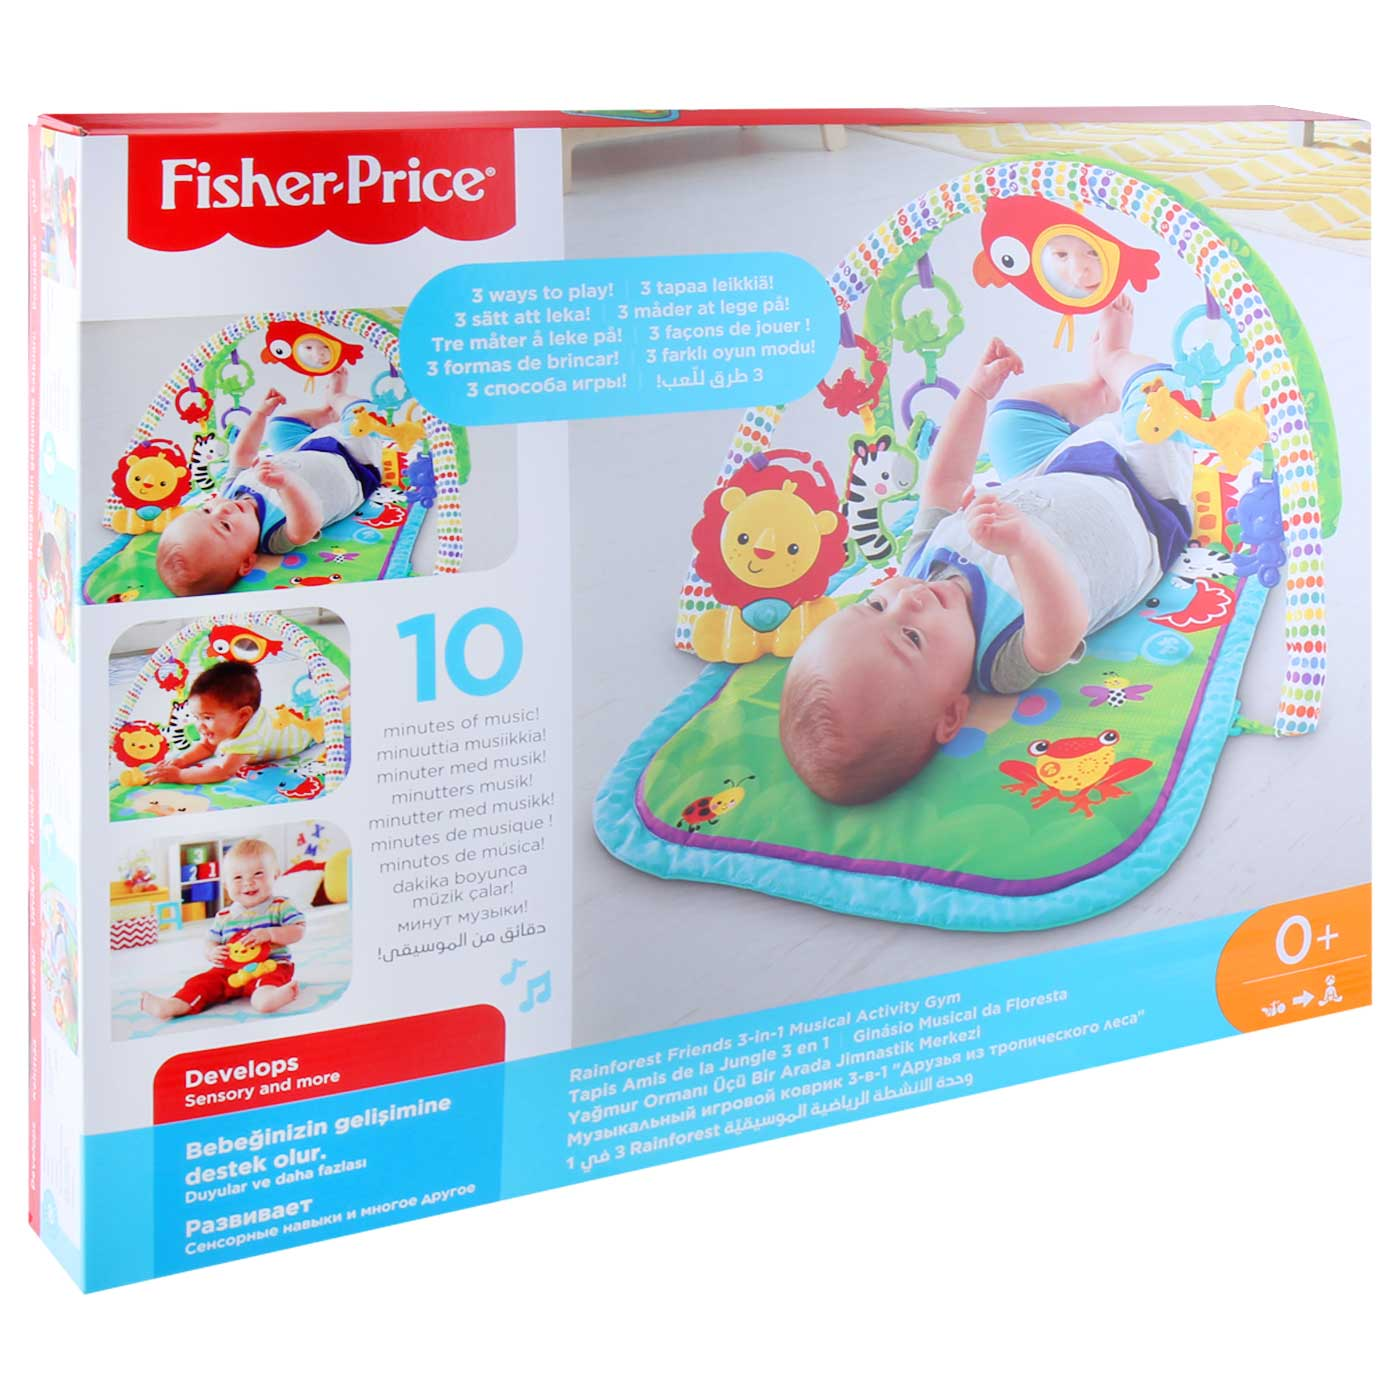 Fisher Price NB RFF 3-IN-1 Musical GYM 2